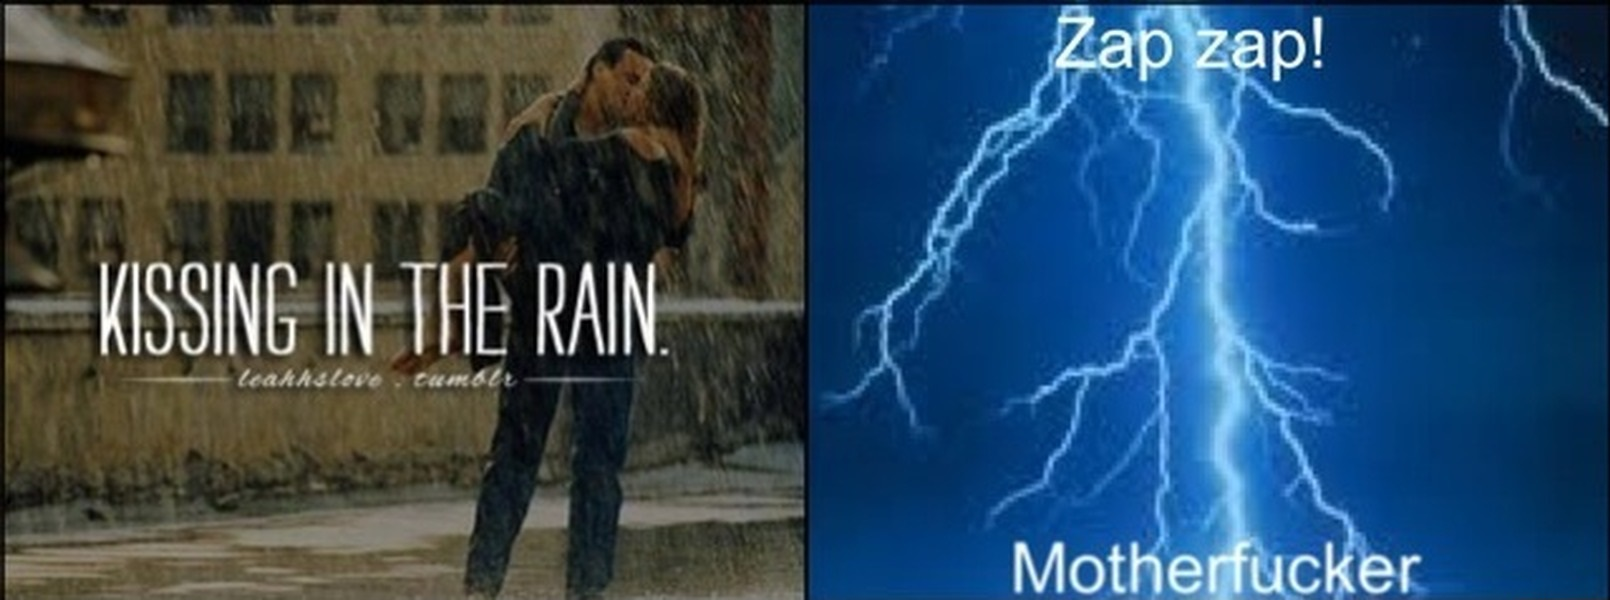 funny-picture-kissing-rain